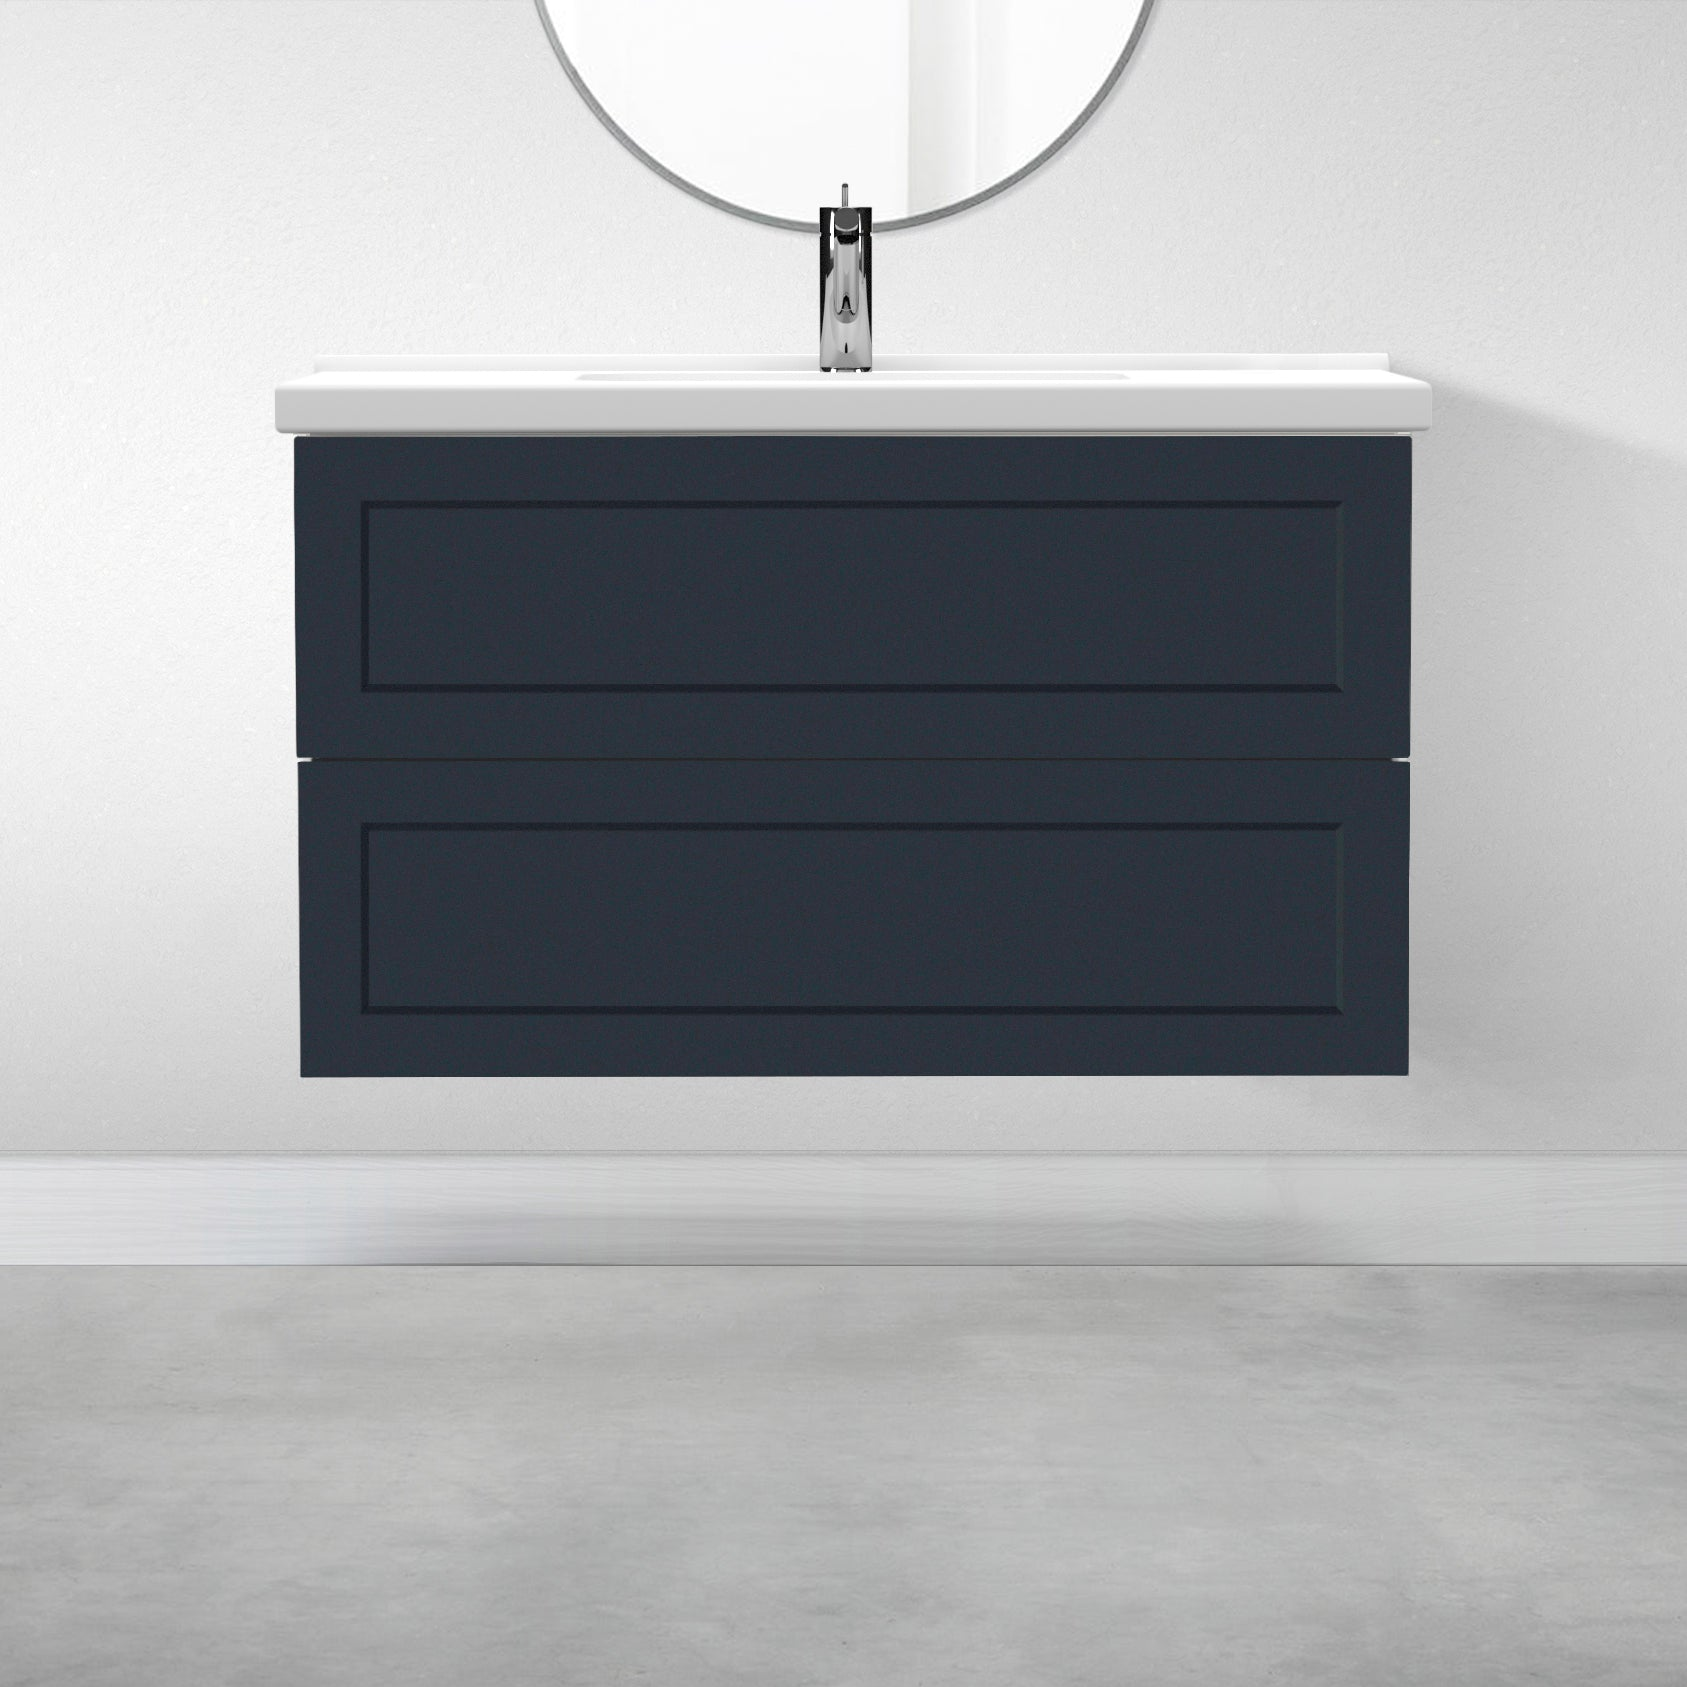 "2 Drawers - 39 3/8"" for Godmorgon Supermatte Shaker / Night Sky"